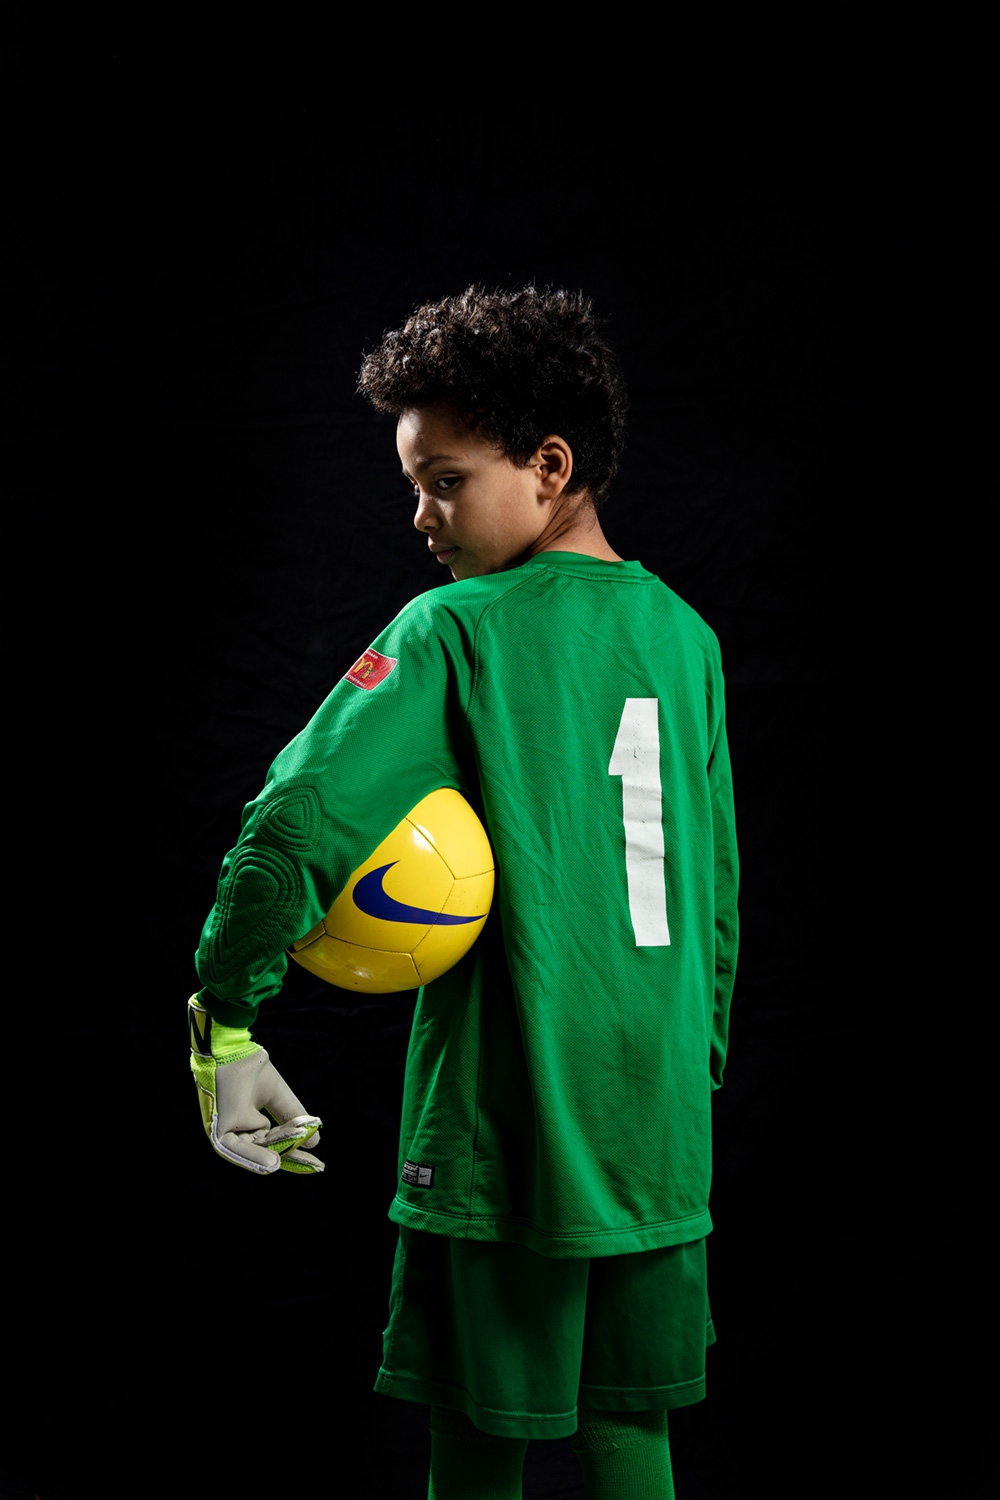 Child wearing a green goalkeeper's uniform with the number '1', looking over their shoulder, holding a yellow football under their arm